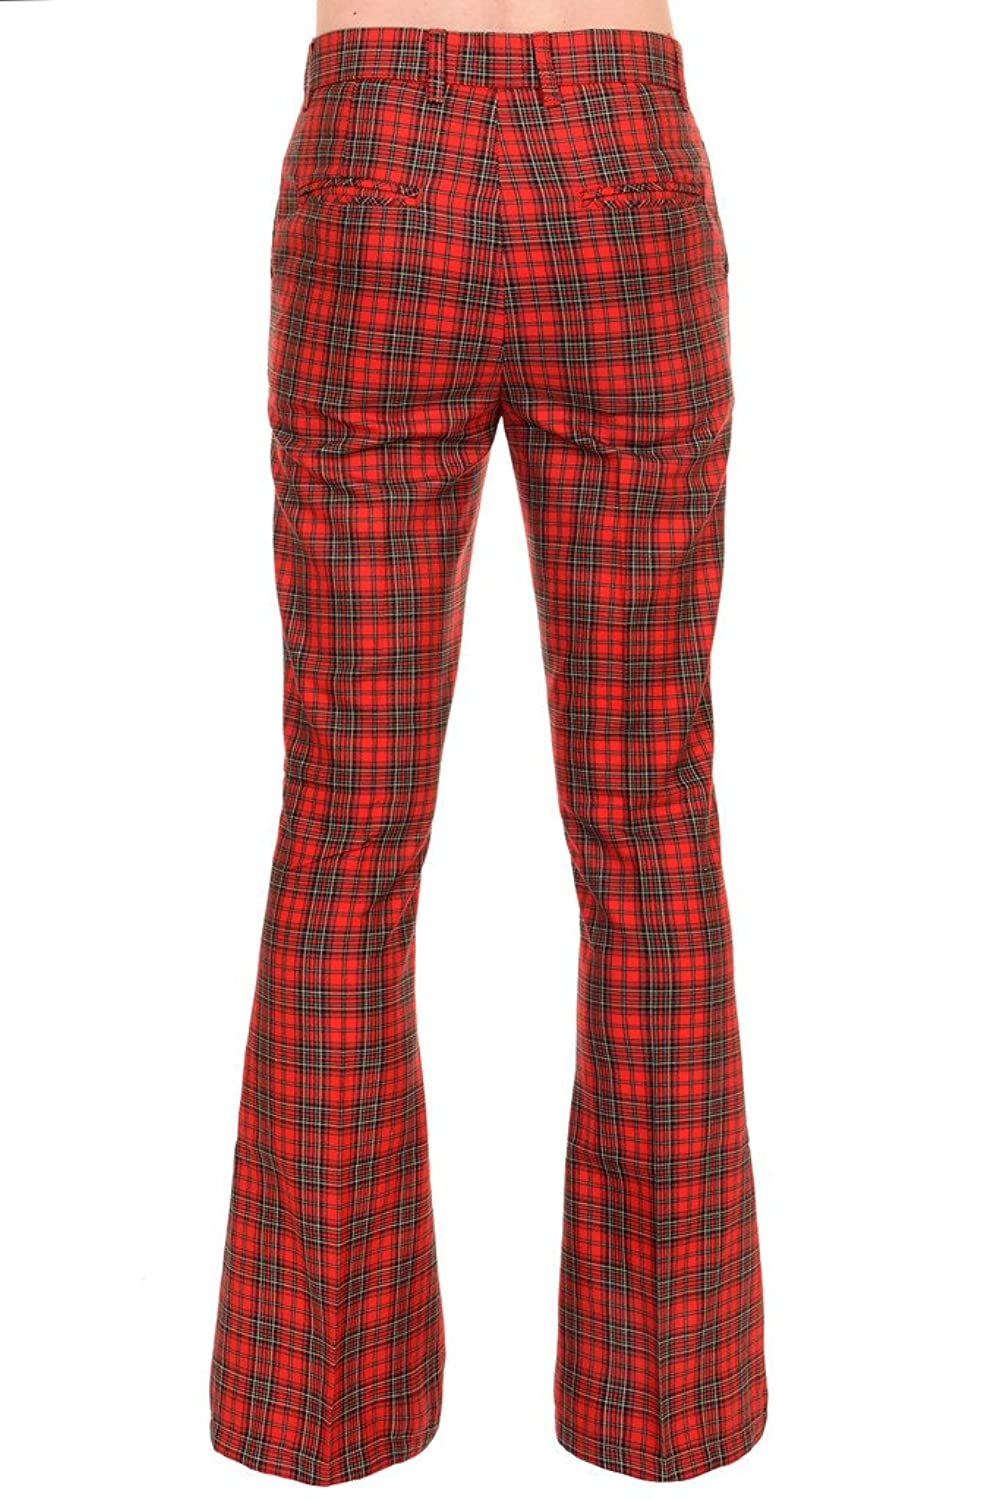 Mens Run & Fly 60s 70s Vintage Red Royal Stewart Tartan Plaid Bell Bottom  Trousers: Amazon.co.uk: Clothing